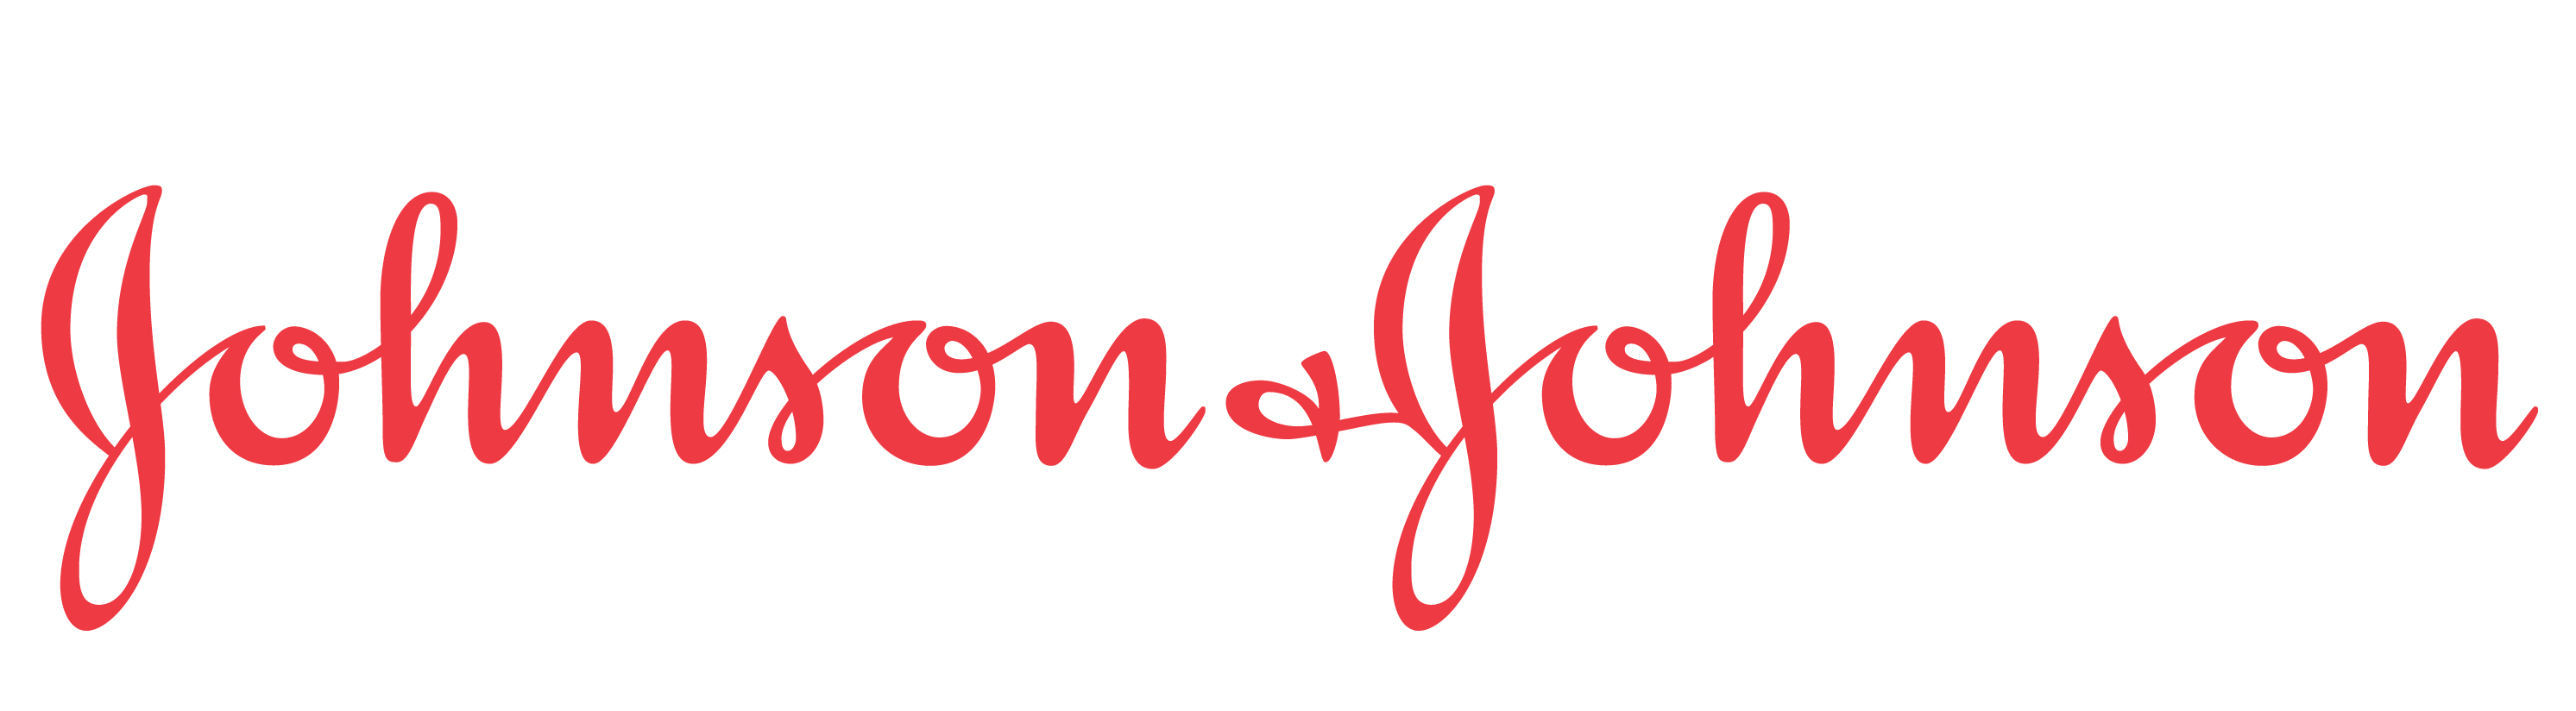 04 johnson-johnson-logo_2015 07 29